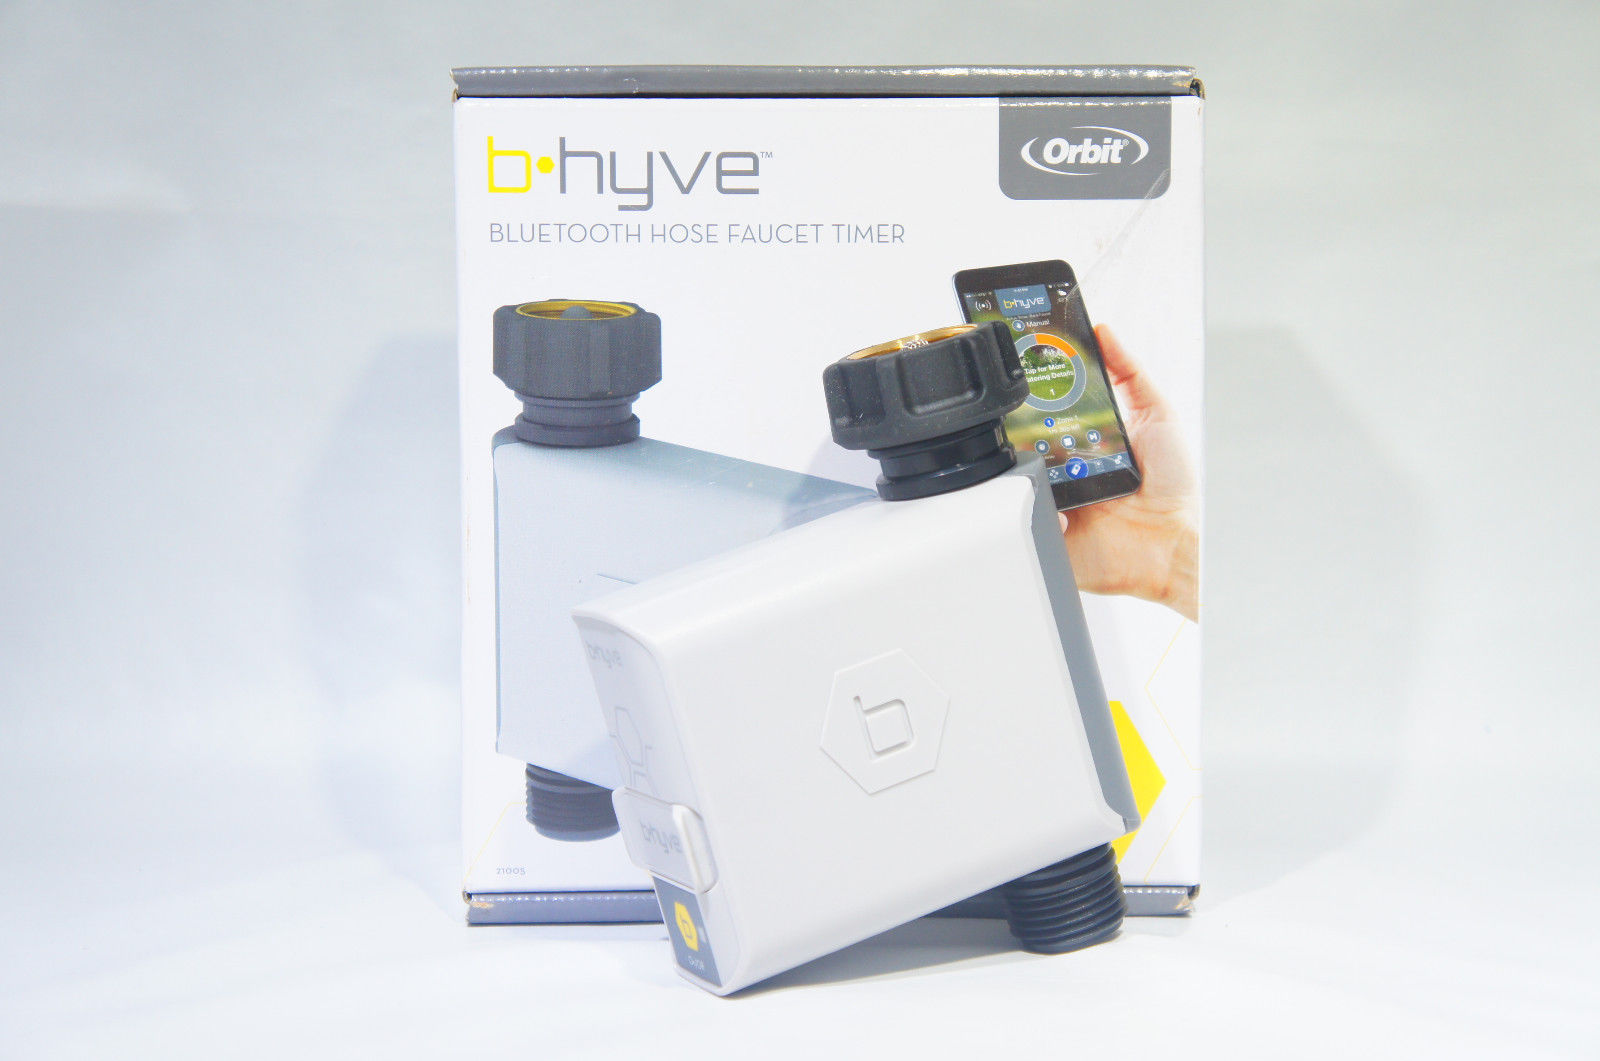 Orbit B-hyve 21005 Bluetooth Hose Faucet Timer (Like New)